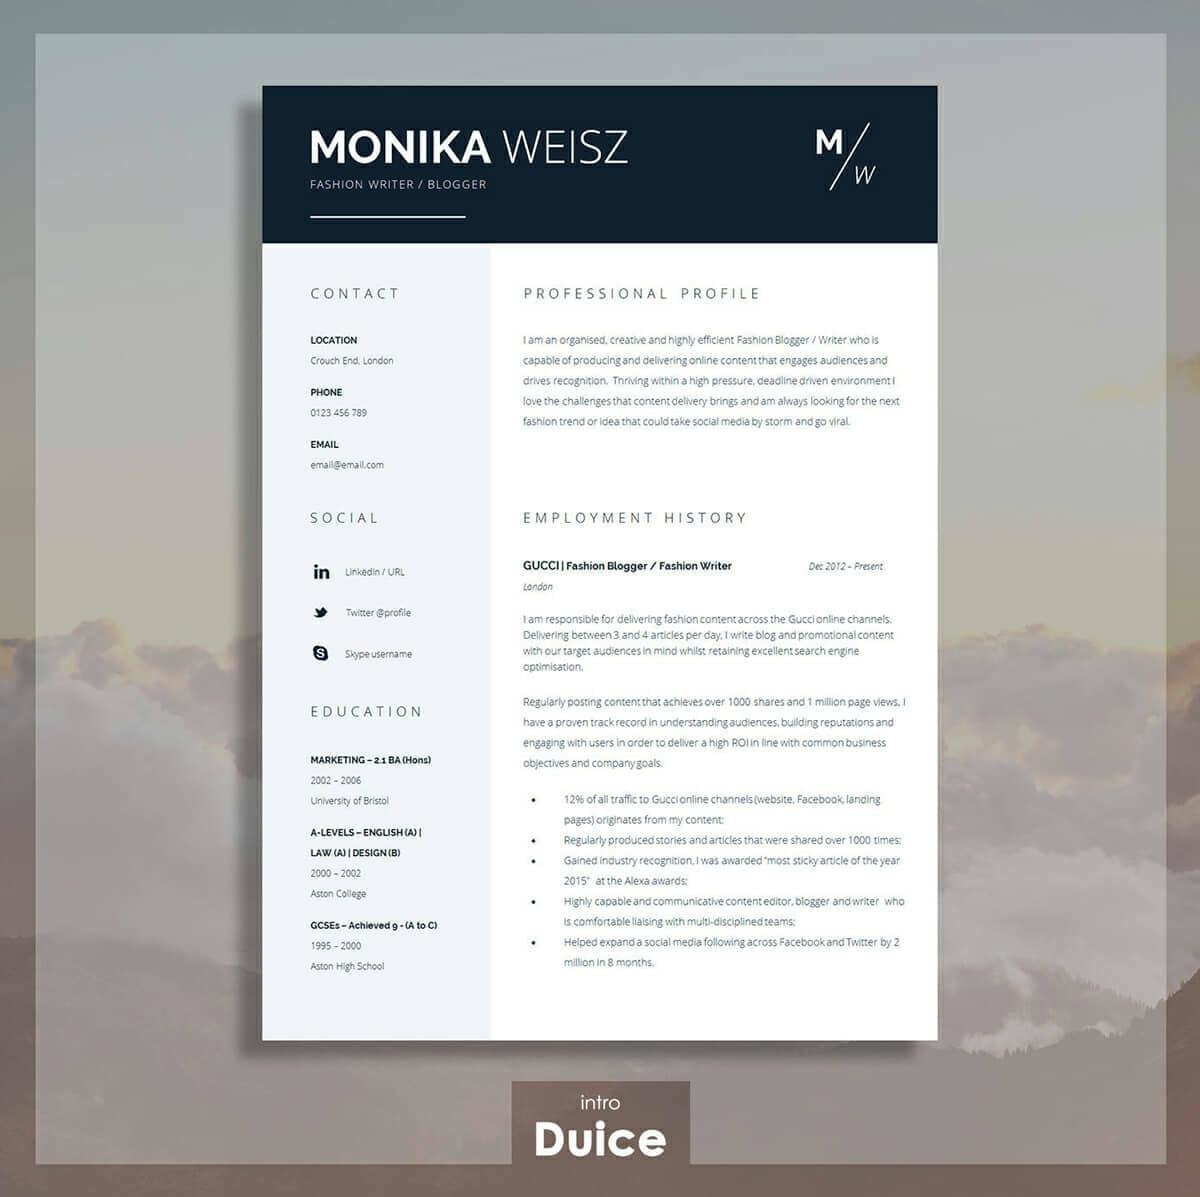 Best Template For Resume | Top 14 Best Resume Templates To Download In 2019 Also Great For Cv